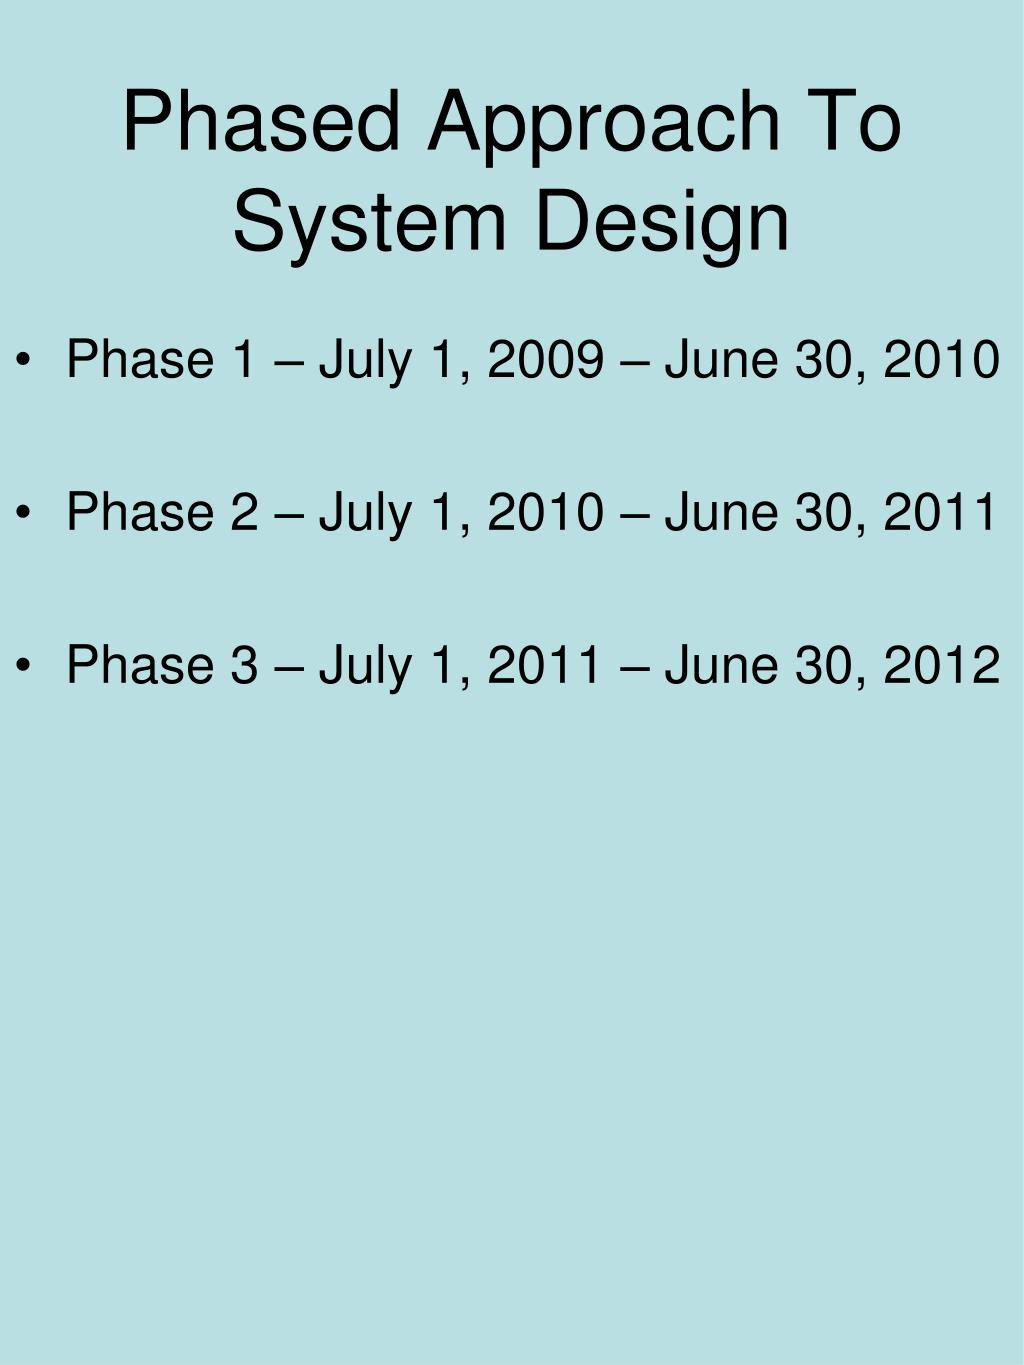 Phased Approach To System Design